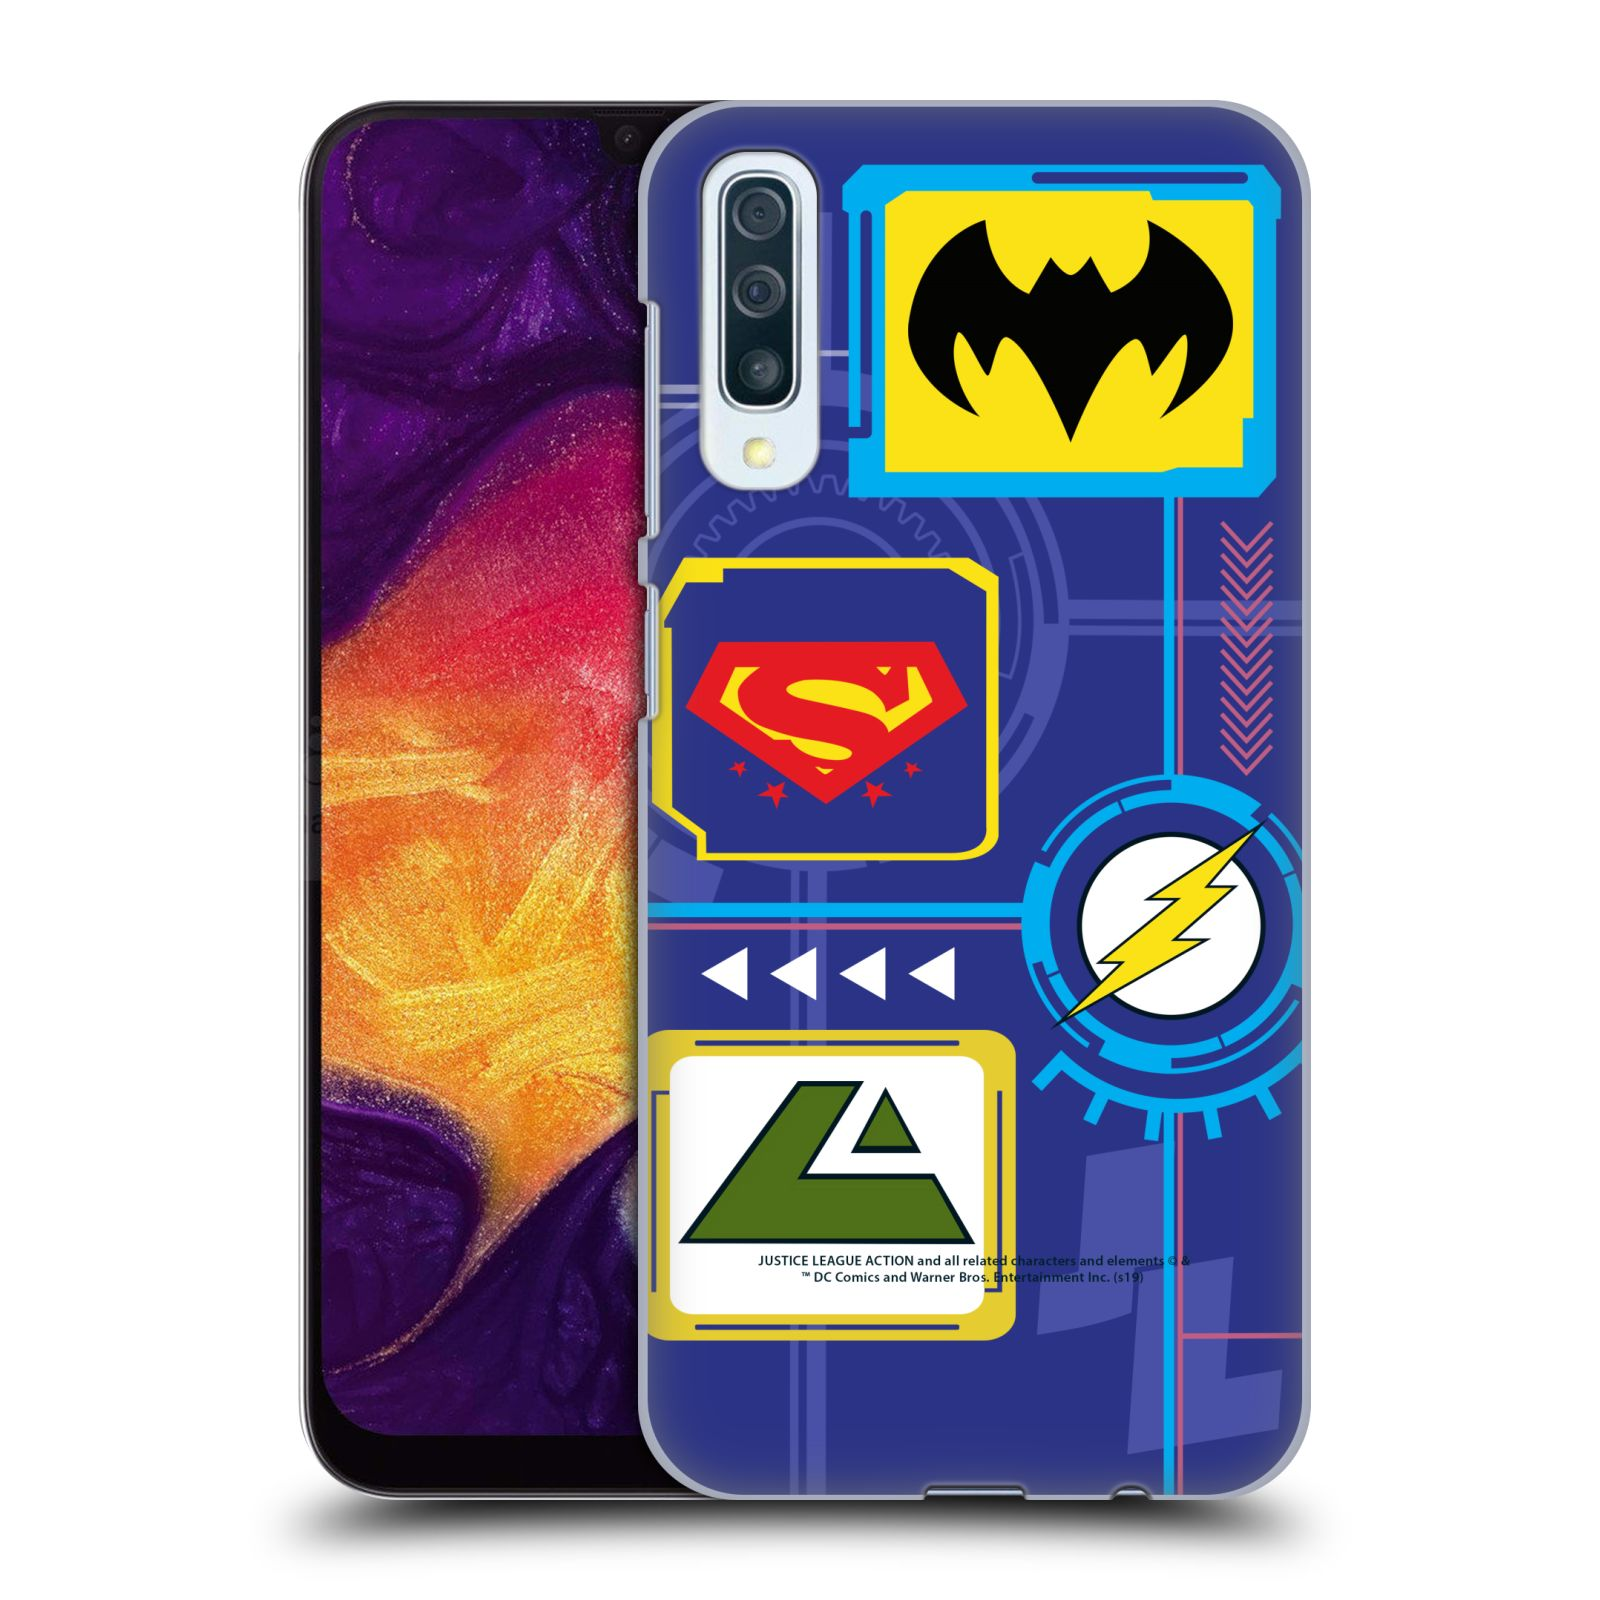 Official Justice League Action Logos Digital Case for Samsung Galaxy A50/A30s (2019)